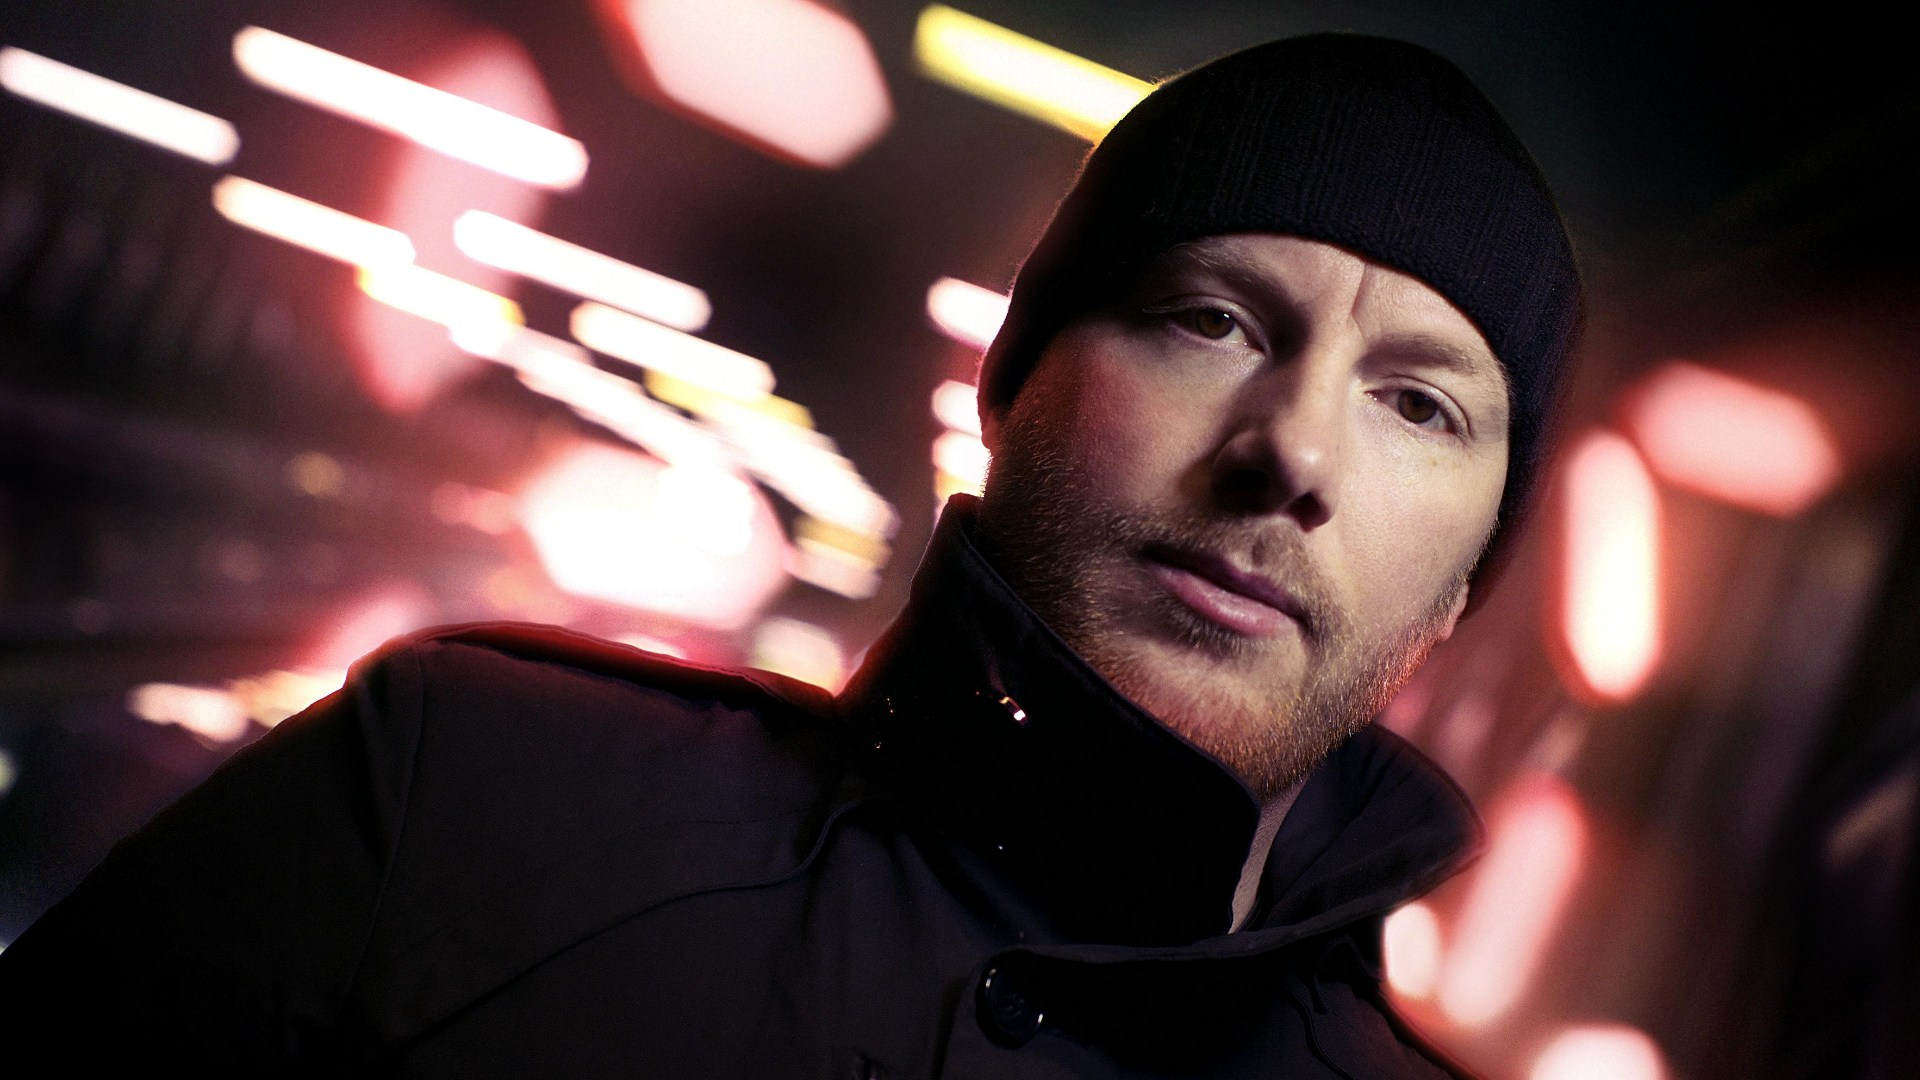 """Eric Prydz And More Announced For """"Together In A State of Trance"""" at Ultra Miami"""